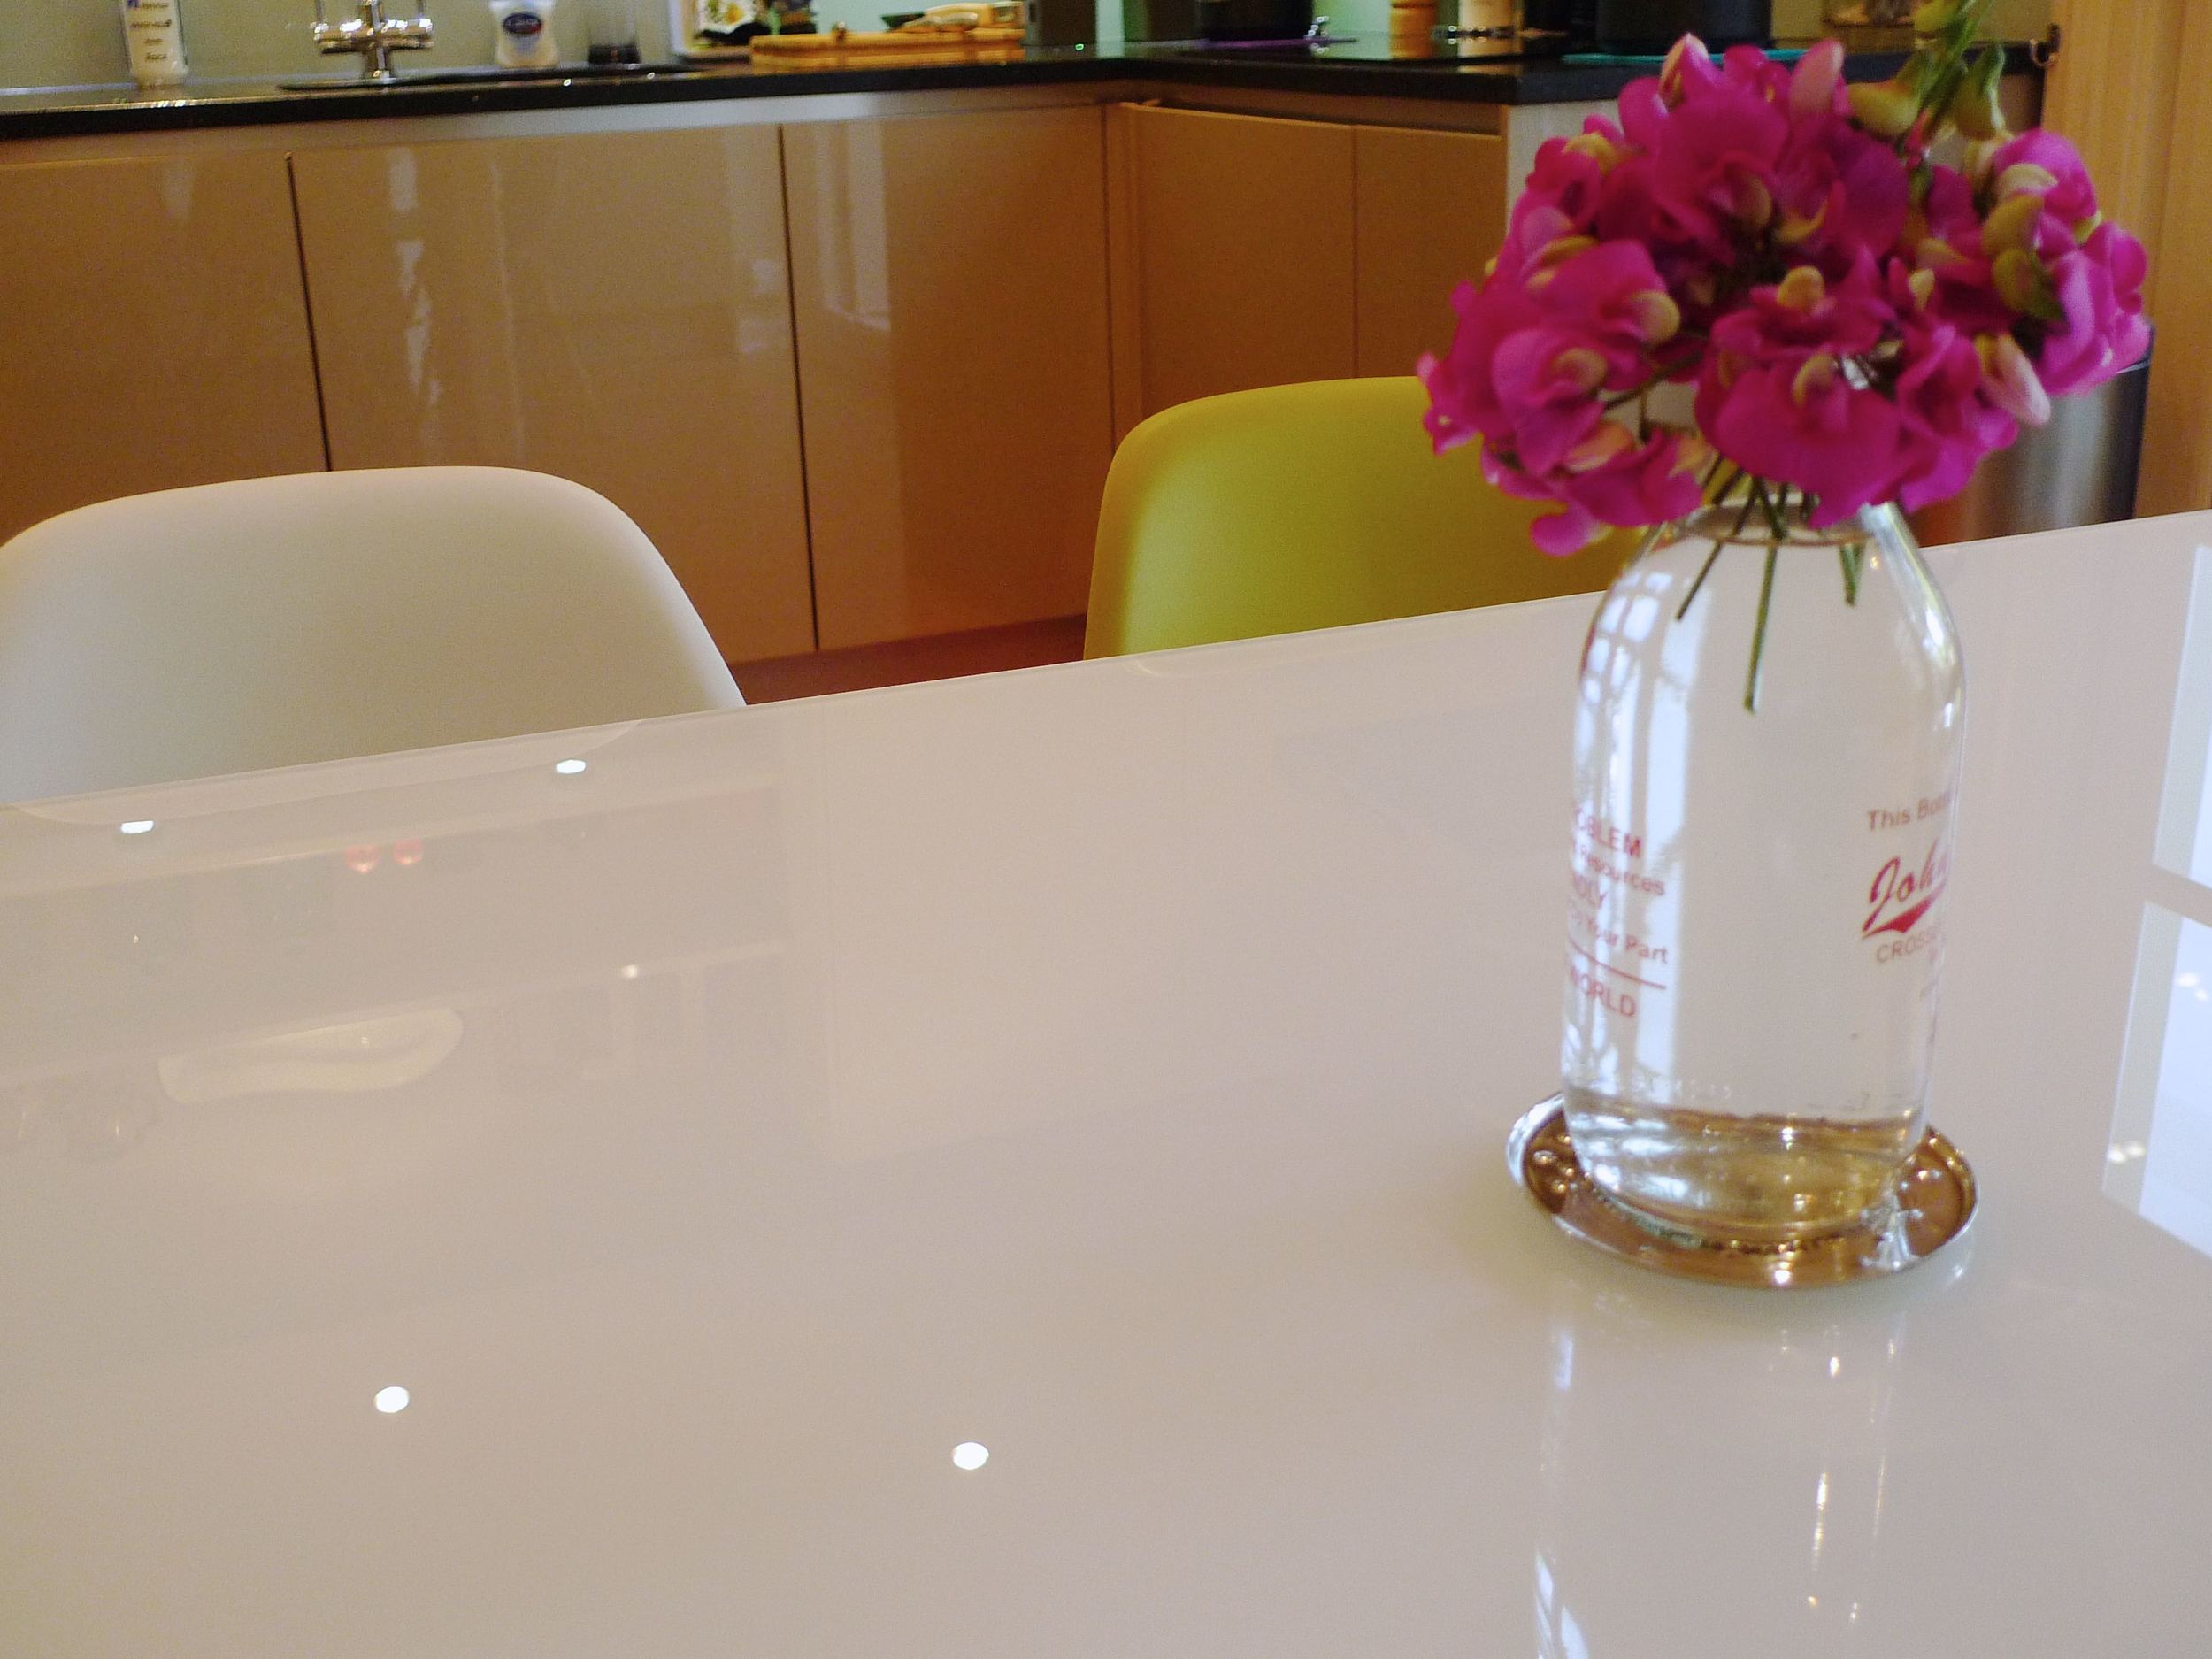 sweet peas, milk bottle and eames chairs